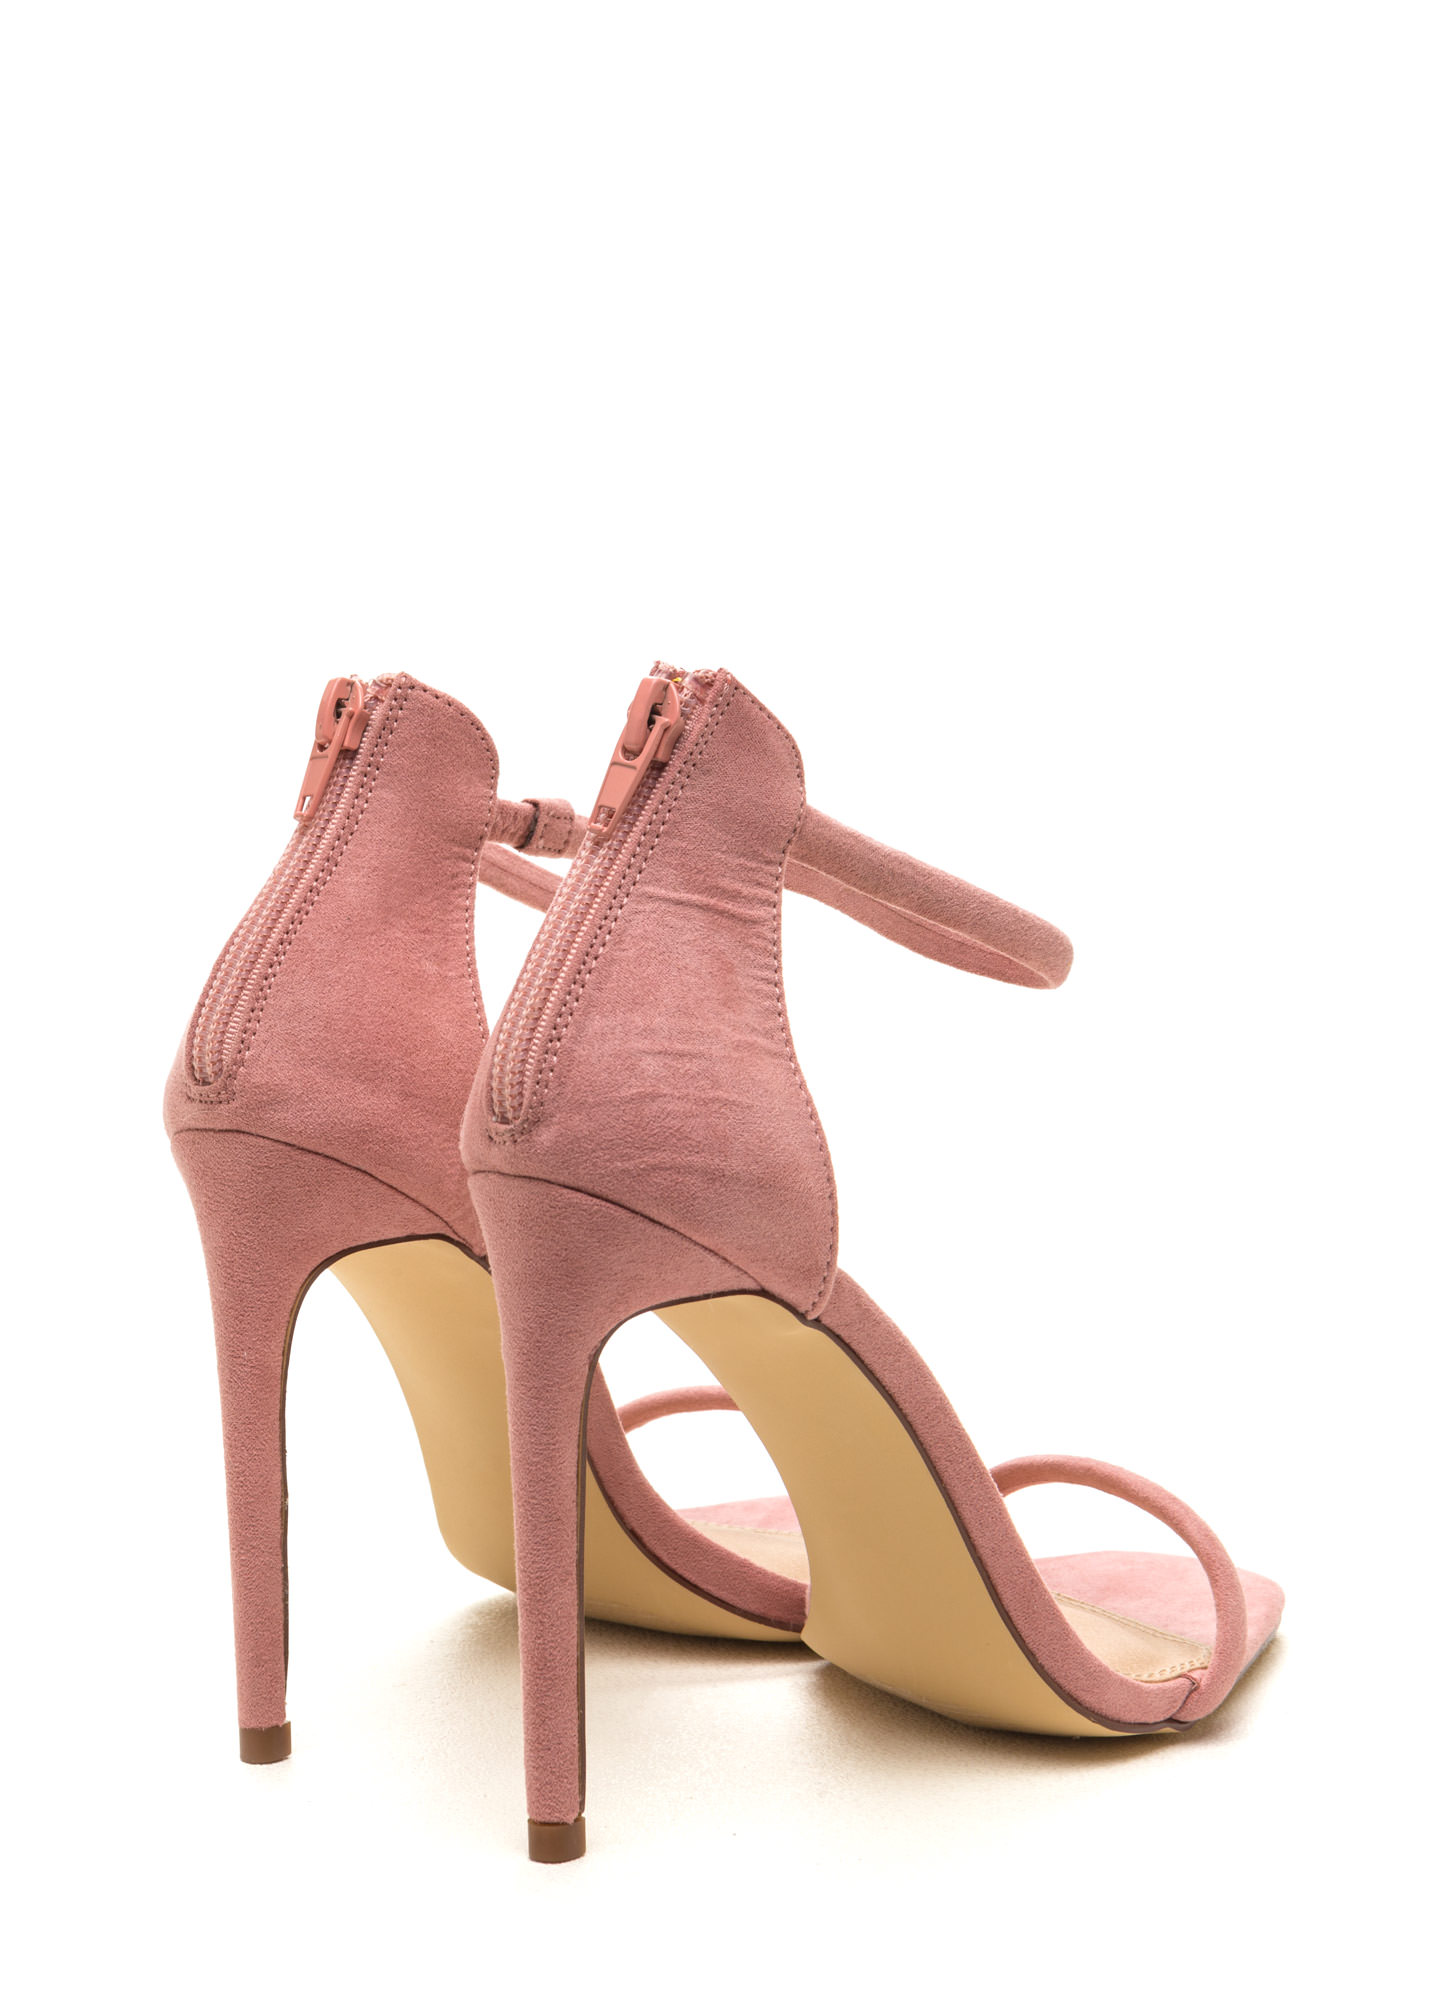 Just One Faux Suede Ankle Strap Heels PURPLE OLIVE TAN DUSTYPINK ...